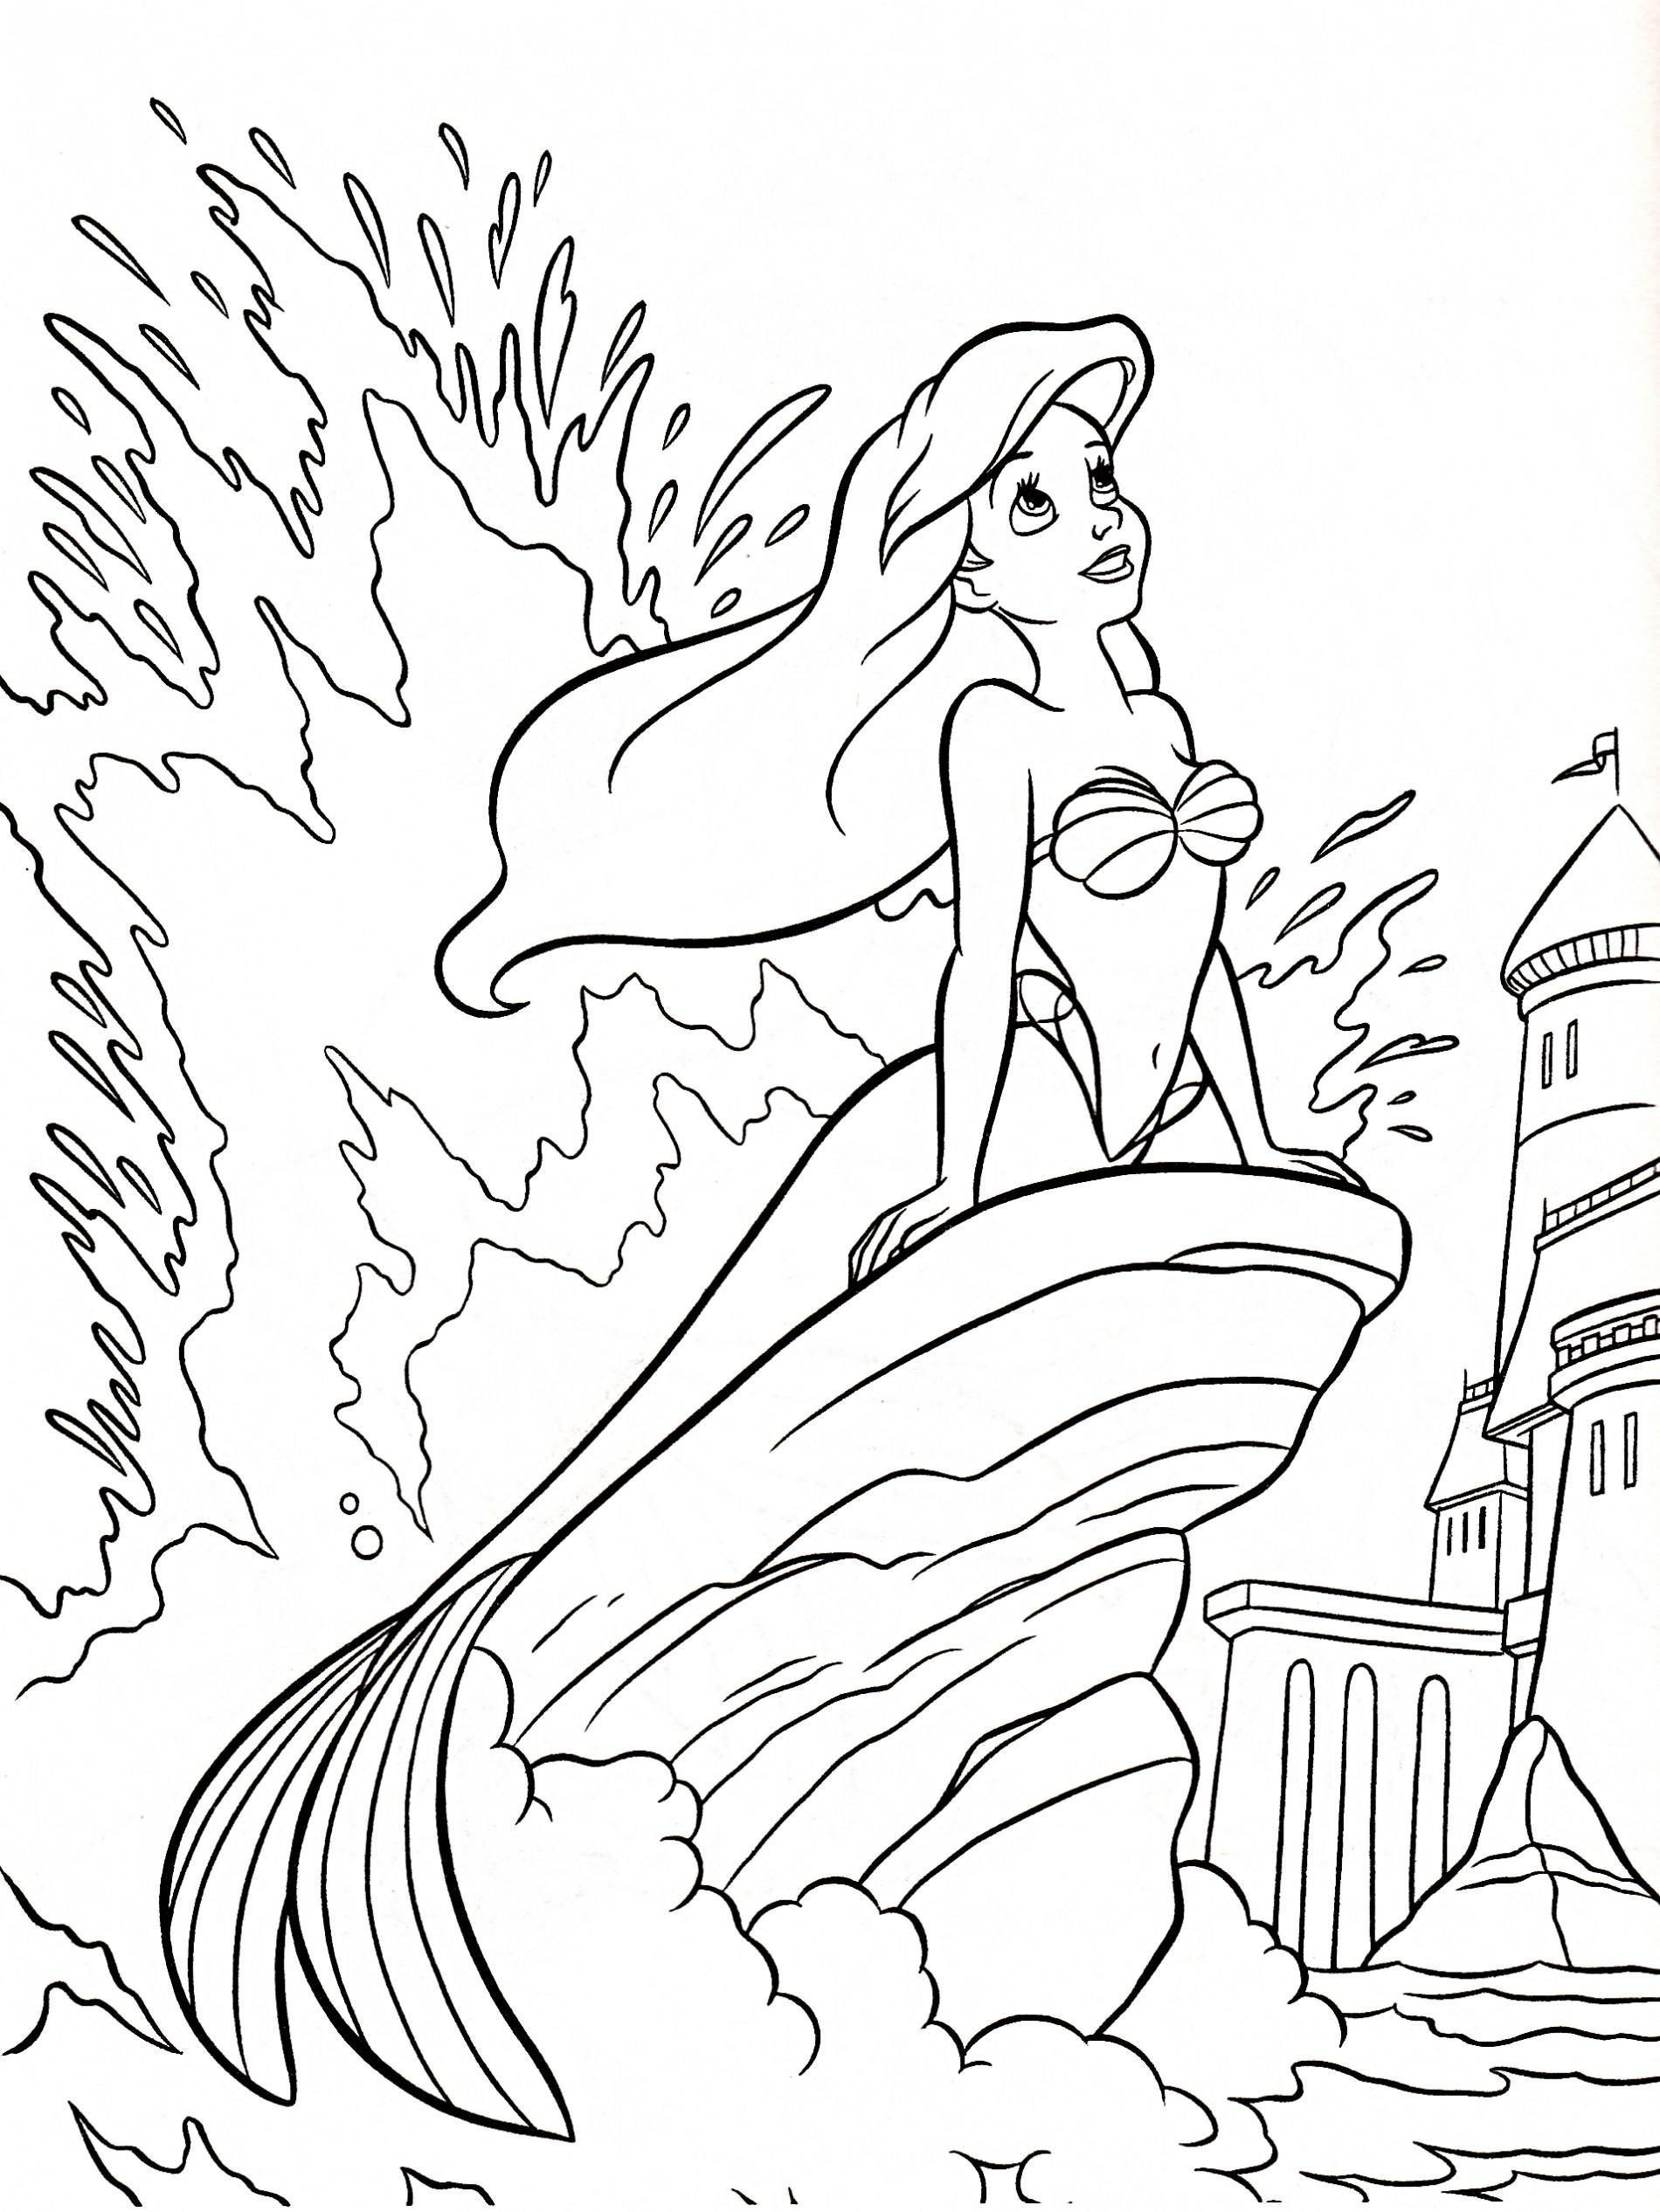 Free Little Mermaid Coloring Pages Free Printable Little Mermaid Christmas Coloring In 2020 Ariel Coloring Pages Disney Princess Coloring Pages Princess Coloring Pages